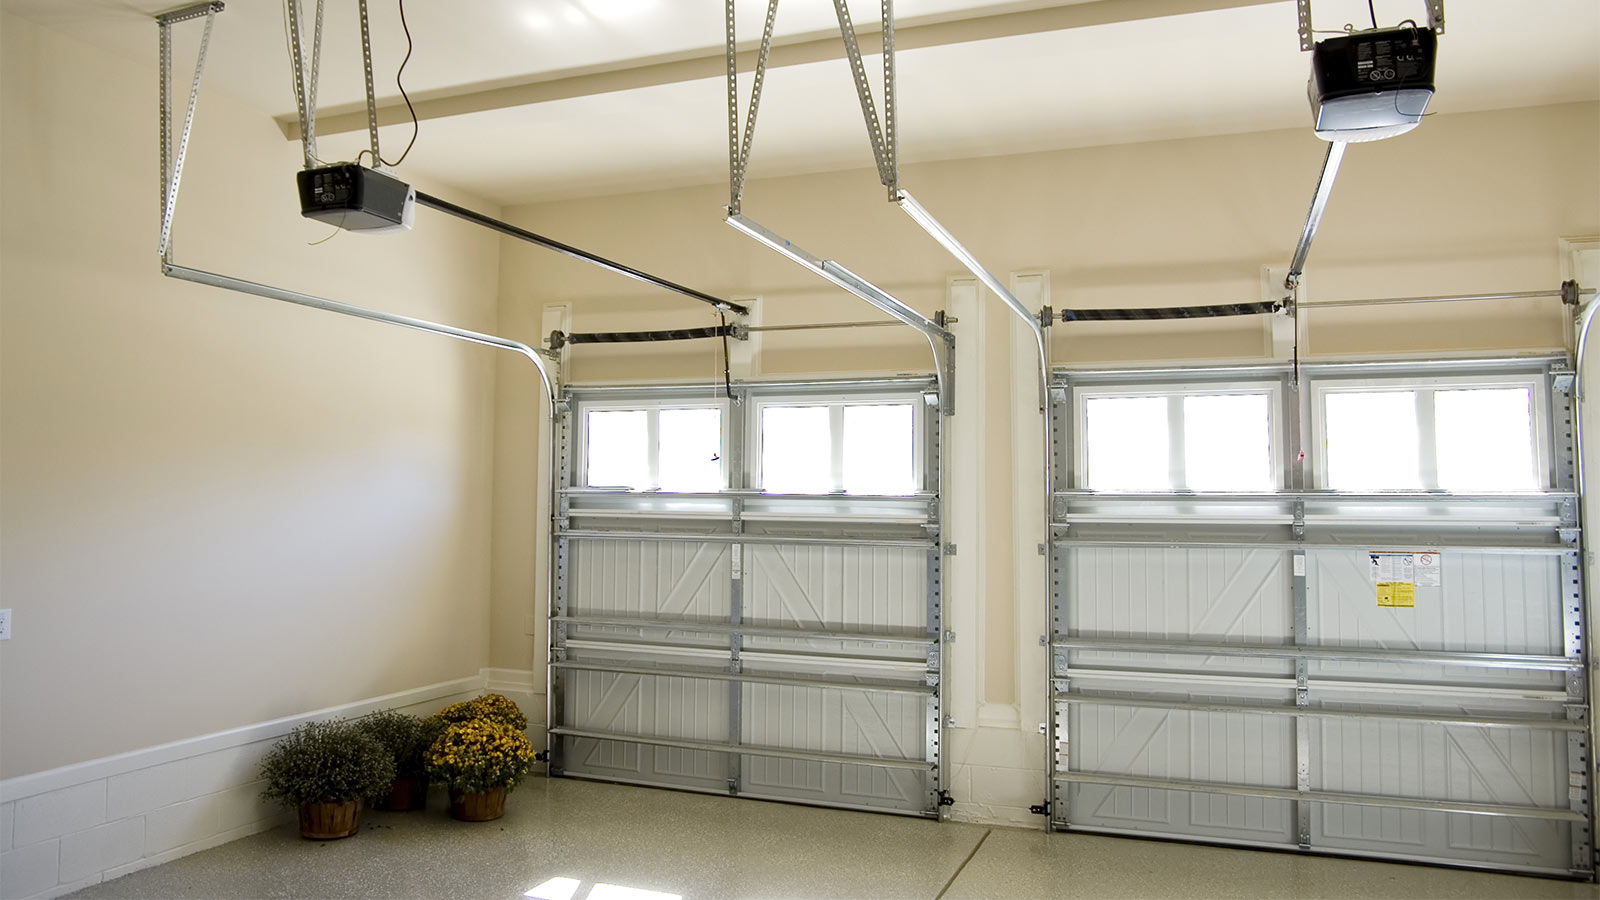 Sectional Garage Doors from Fire Shutters Surrey suppliers.